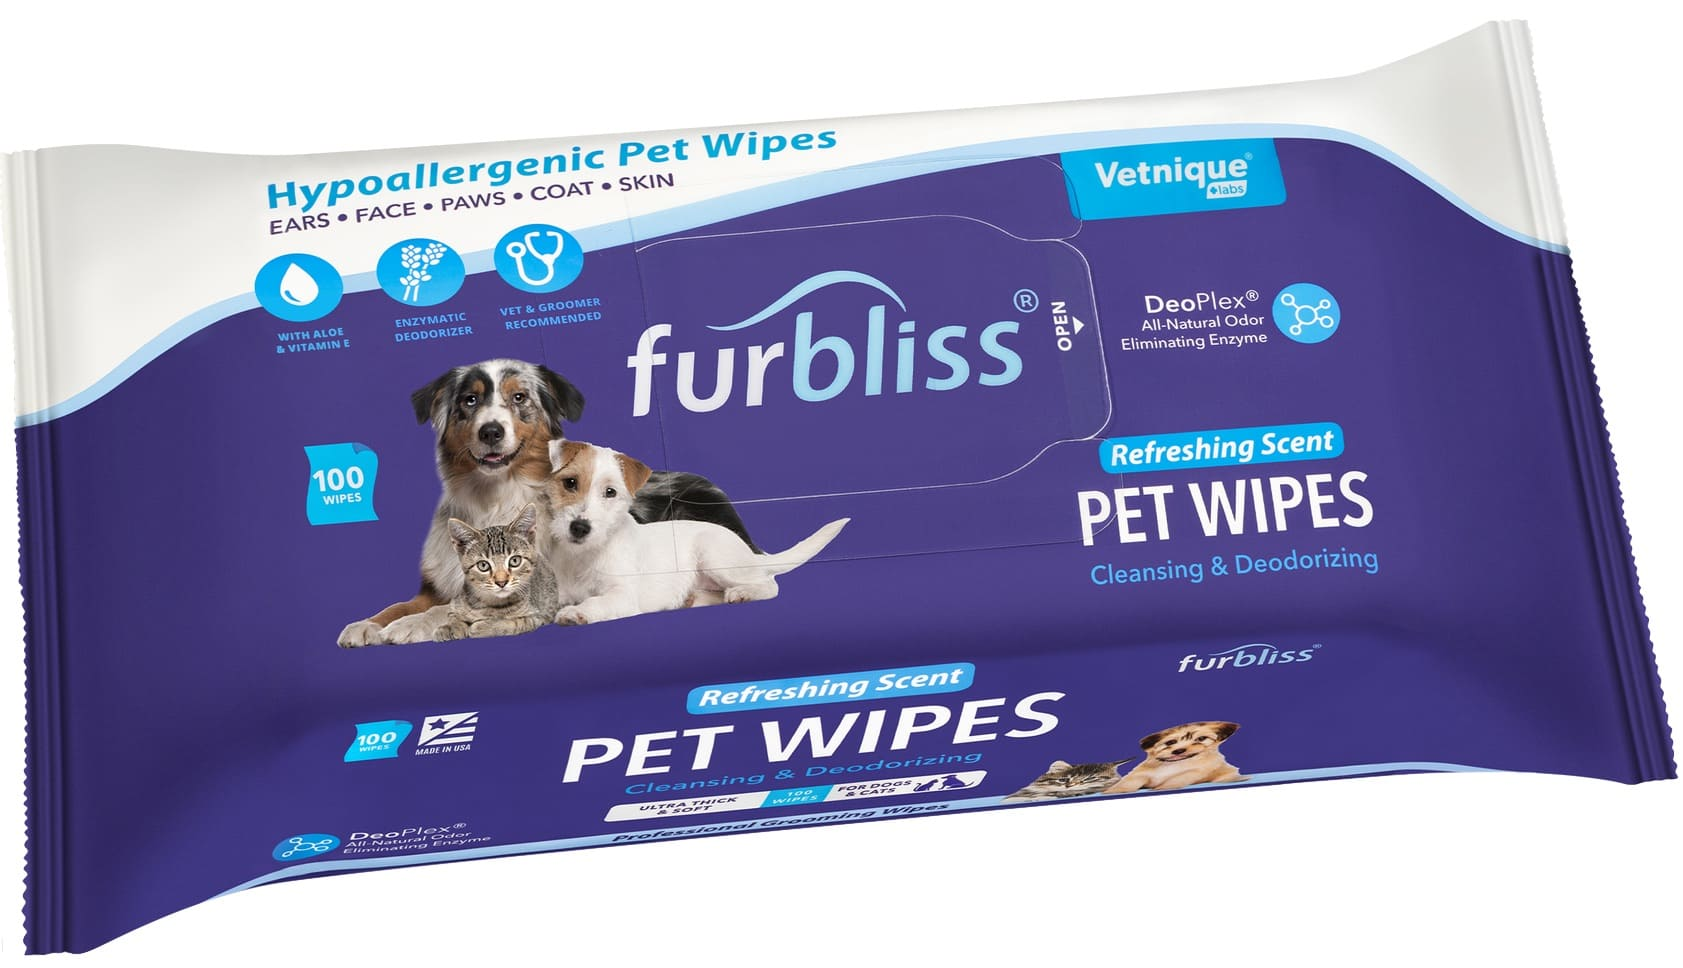 Furbliss Hygienic Grooming Pet Wipes 100 count (Single) Refreshing 1